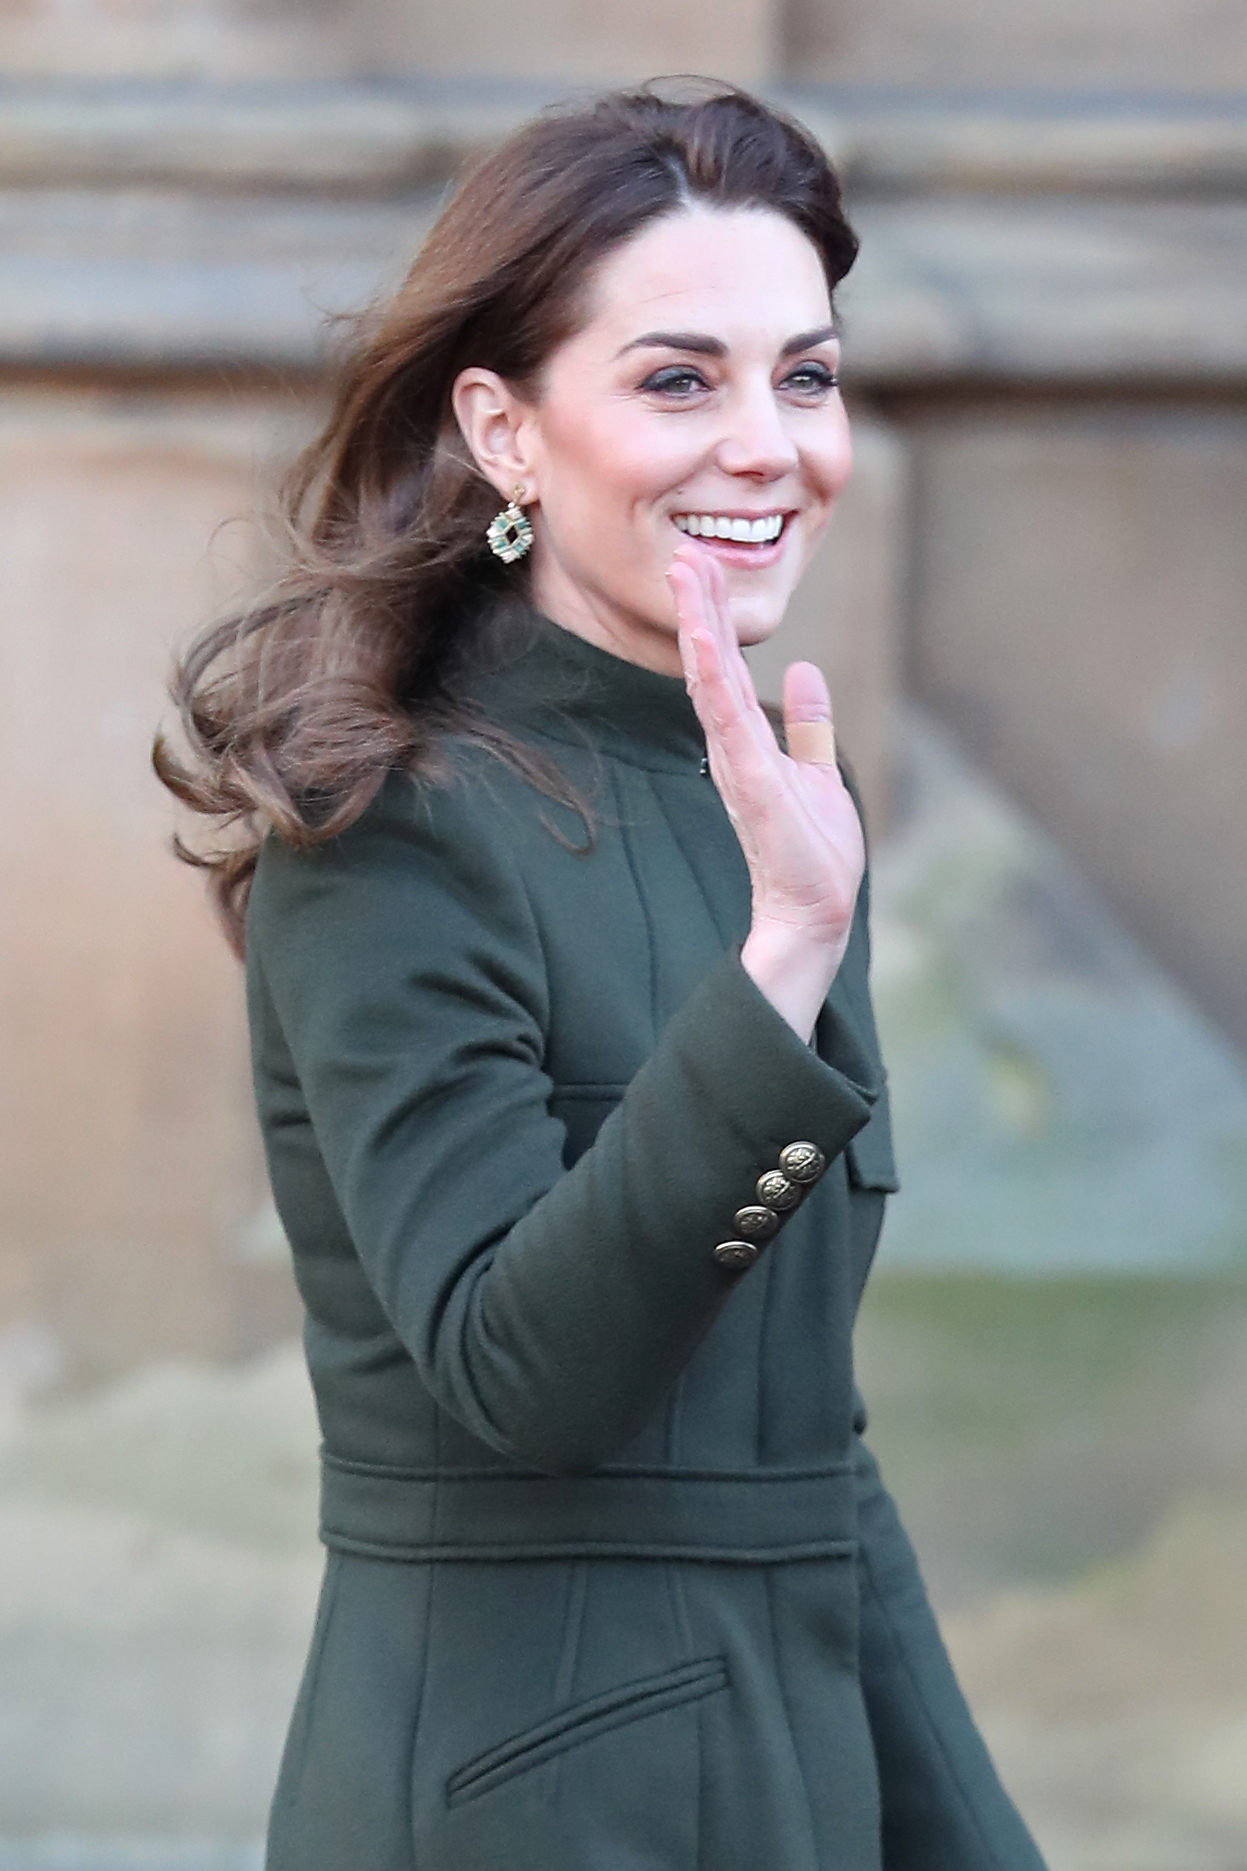 BRADFORD, ENGLAND - JANUARY 15: Catherine, Duchess of Cambridge arrives at City Hall on January 15, 2020 in Bradford, United Kingdom. The Duke and Duchess will meet with representatives from local employers and businesses who are helping young people into employment. (Photo by Chris Jackson/Getty Images) (Photo by Chris Jackson/Getty Images)